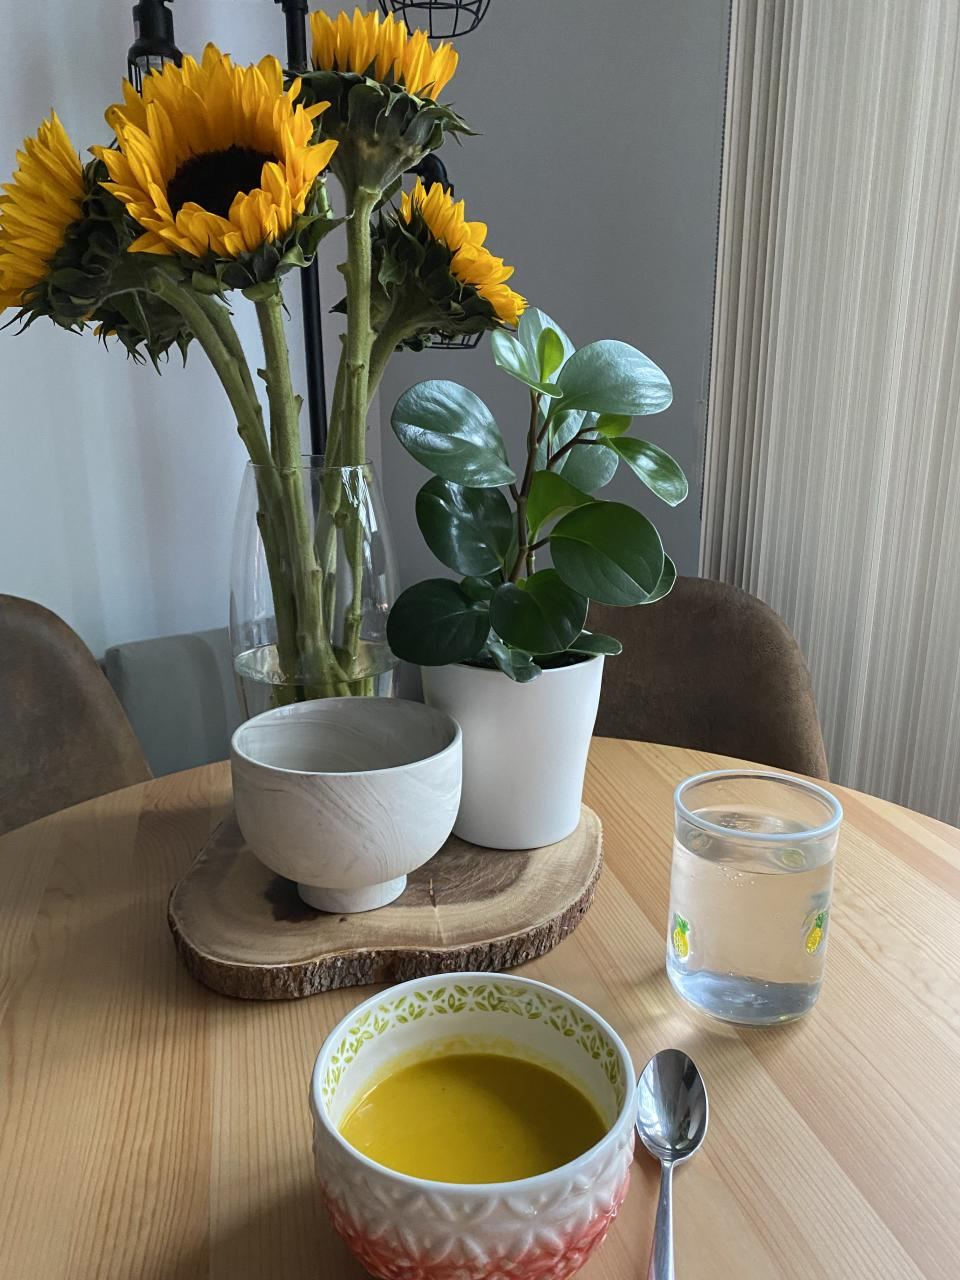 sunflowers, candle and bowl of orange soup